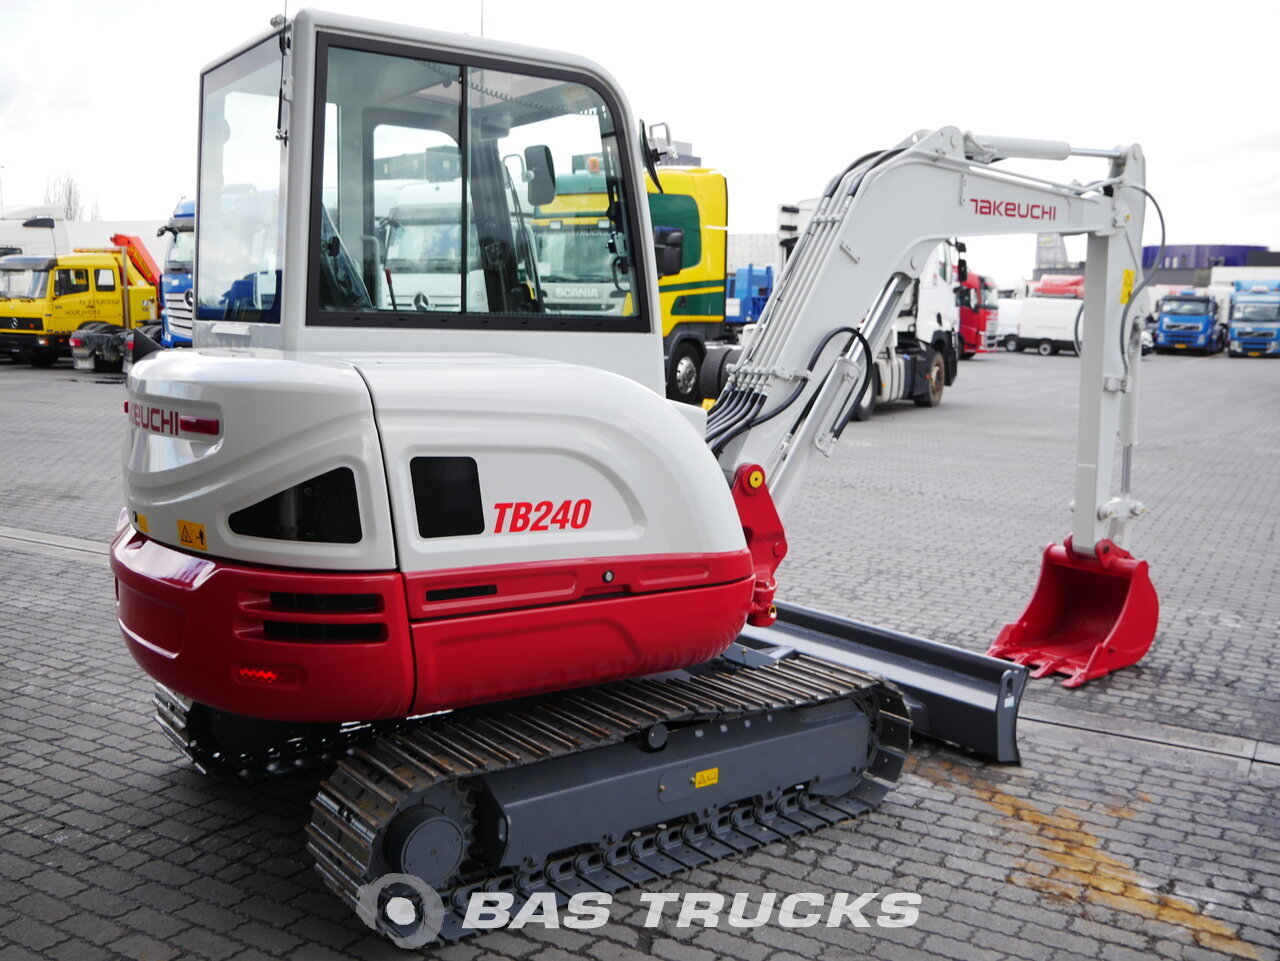 For sale at BAS Trucks: Takeuchi TB240 Track 01/2018